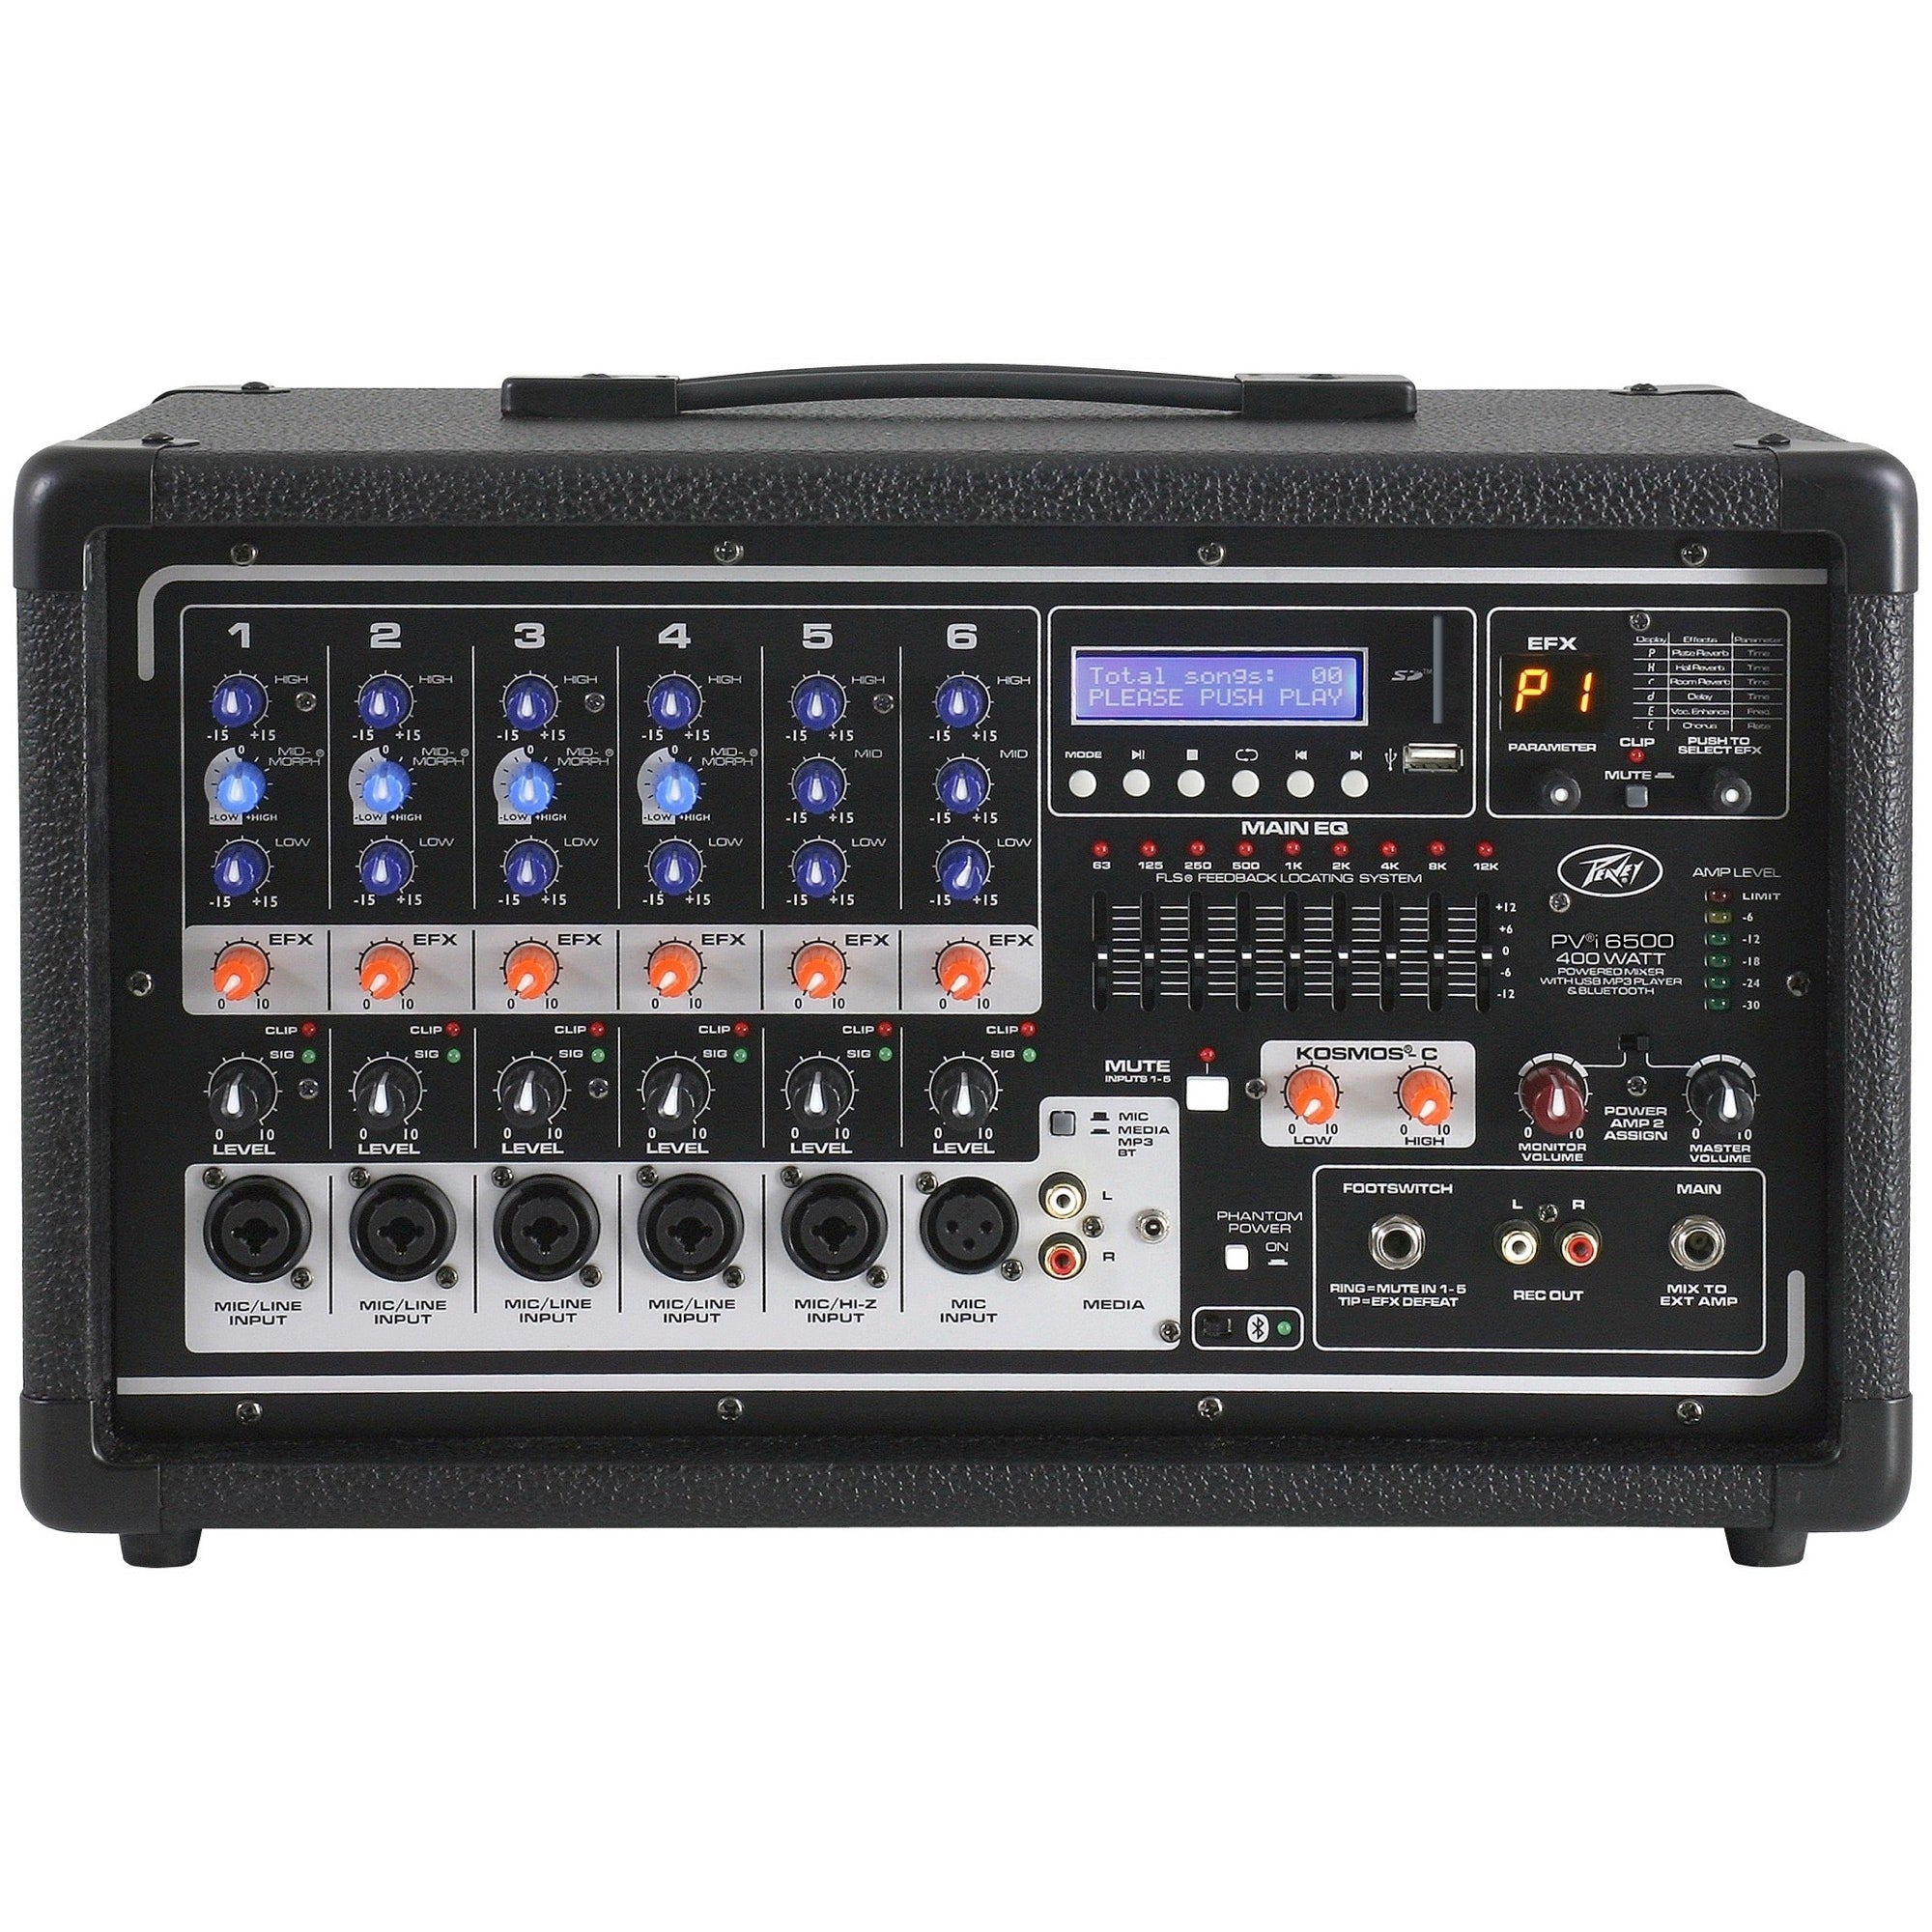 Peavey PVi6500 Powered Mixer with Bluetooth